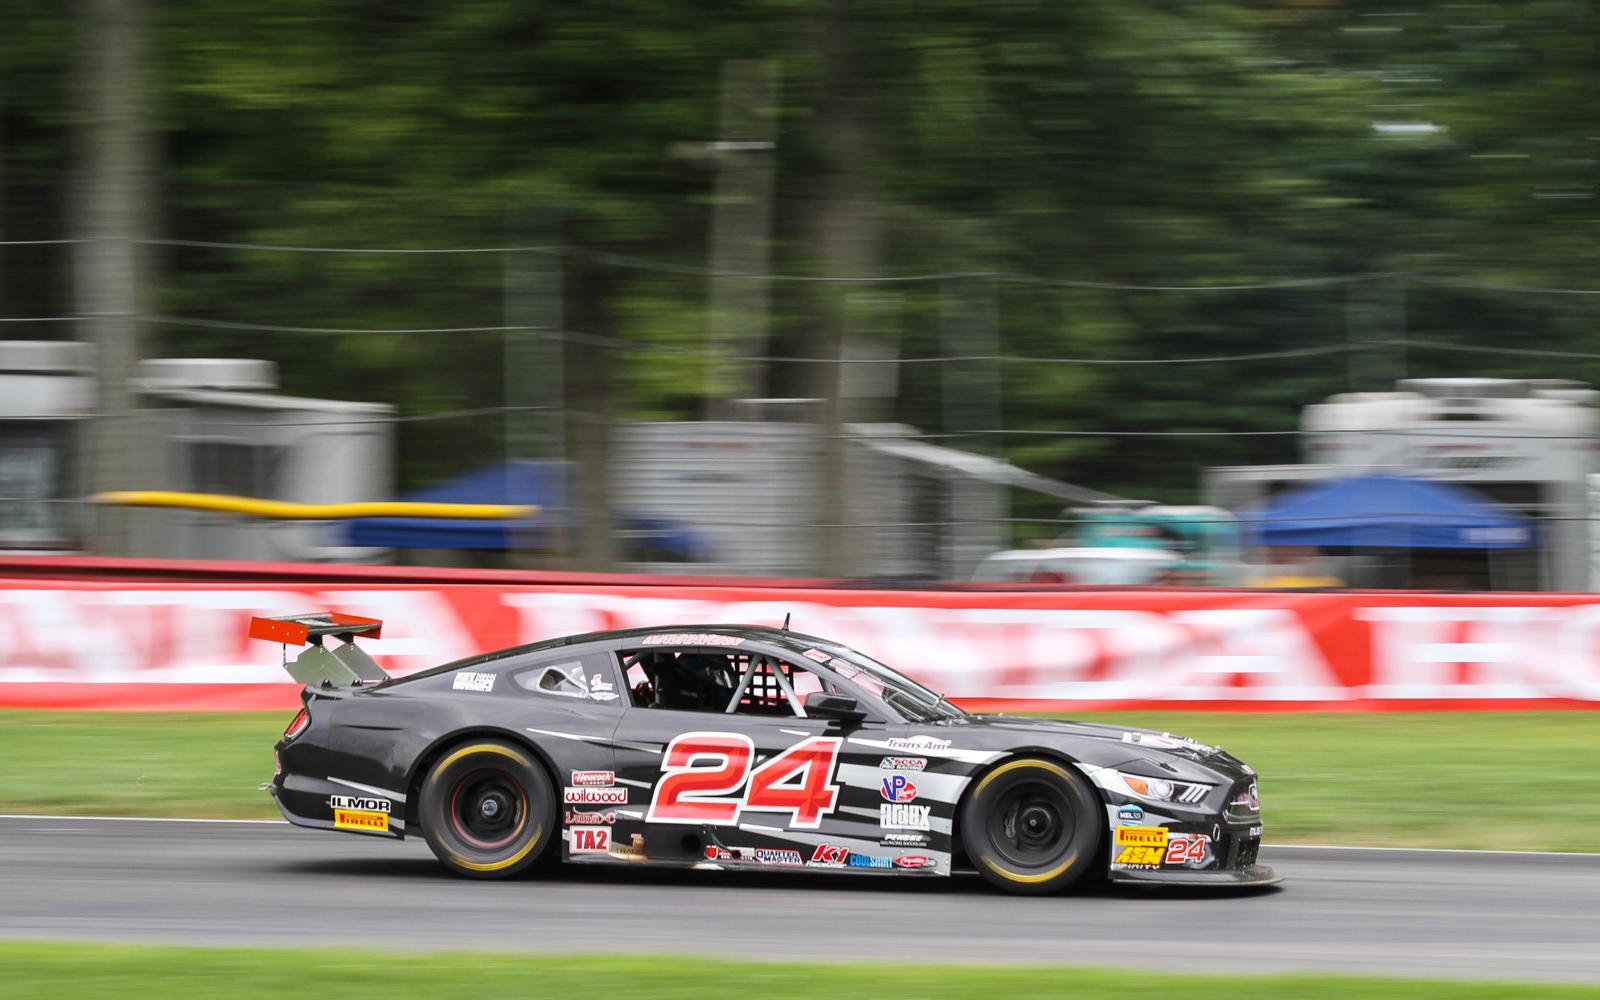 Machavern and Ragginger top dampened practice sessions at Mid-Ohio